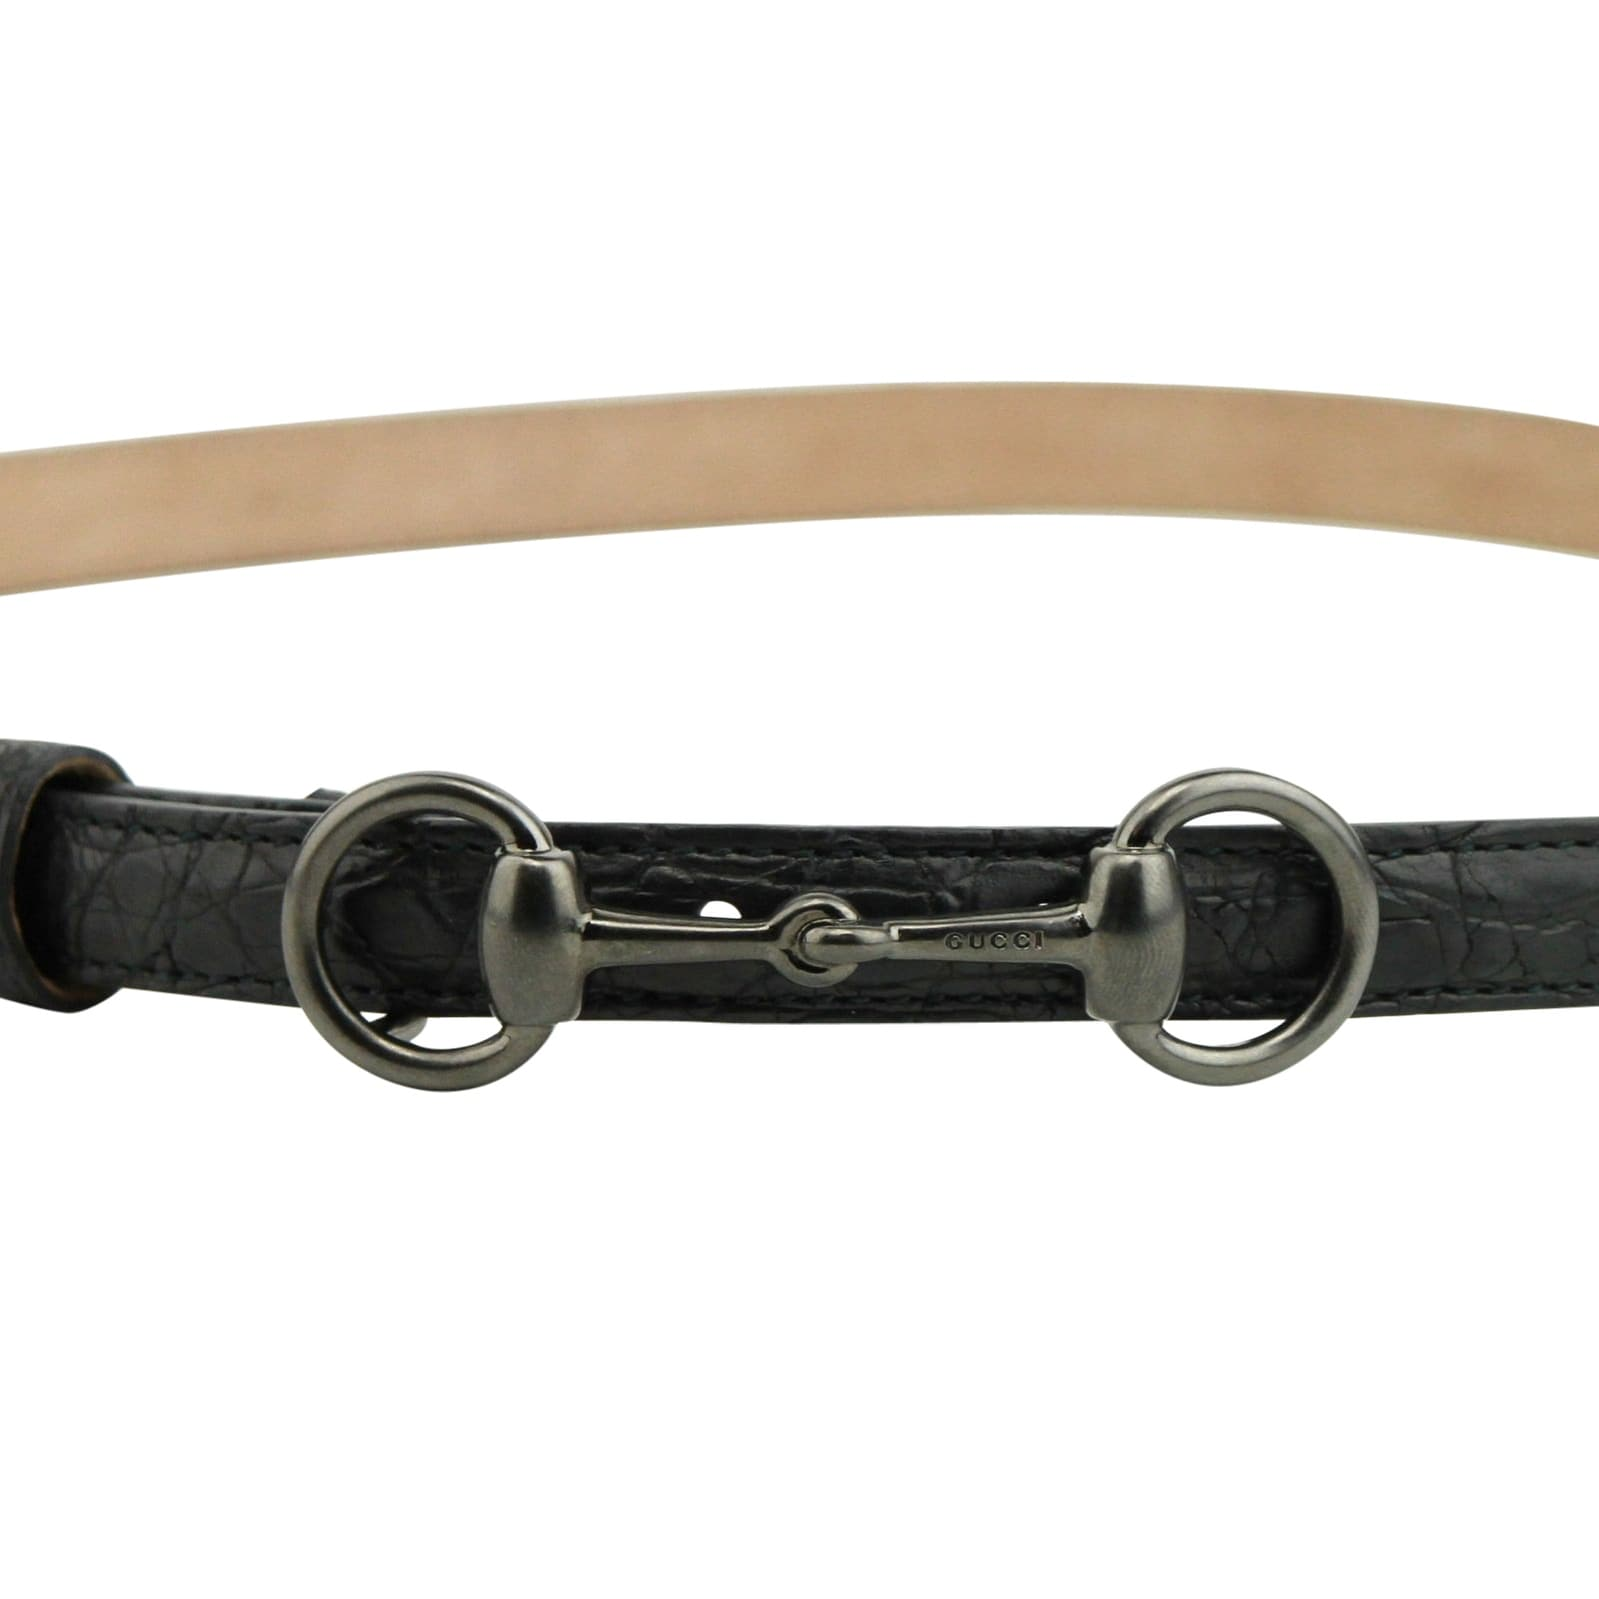 44ce79f35b4 Shop Gucci Women s Horsebit Buckle Black Leather Thin Skinny Belt 282349  1000 - 95   38 - Free Shipping Today - Overstock - 25978239